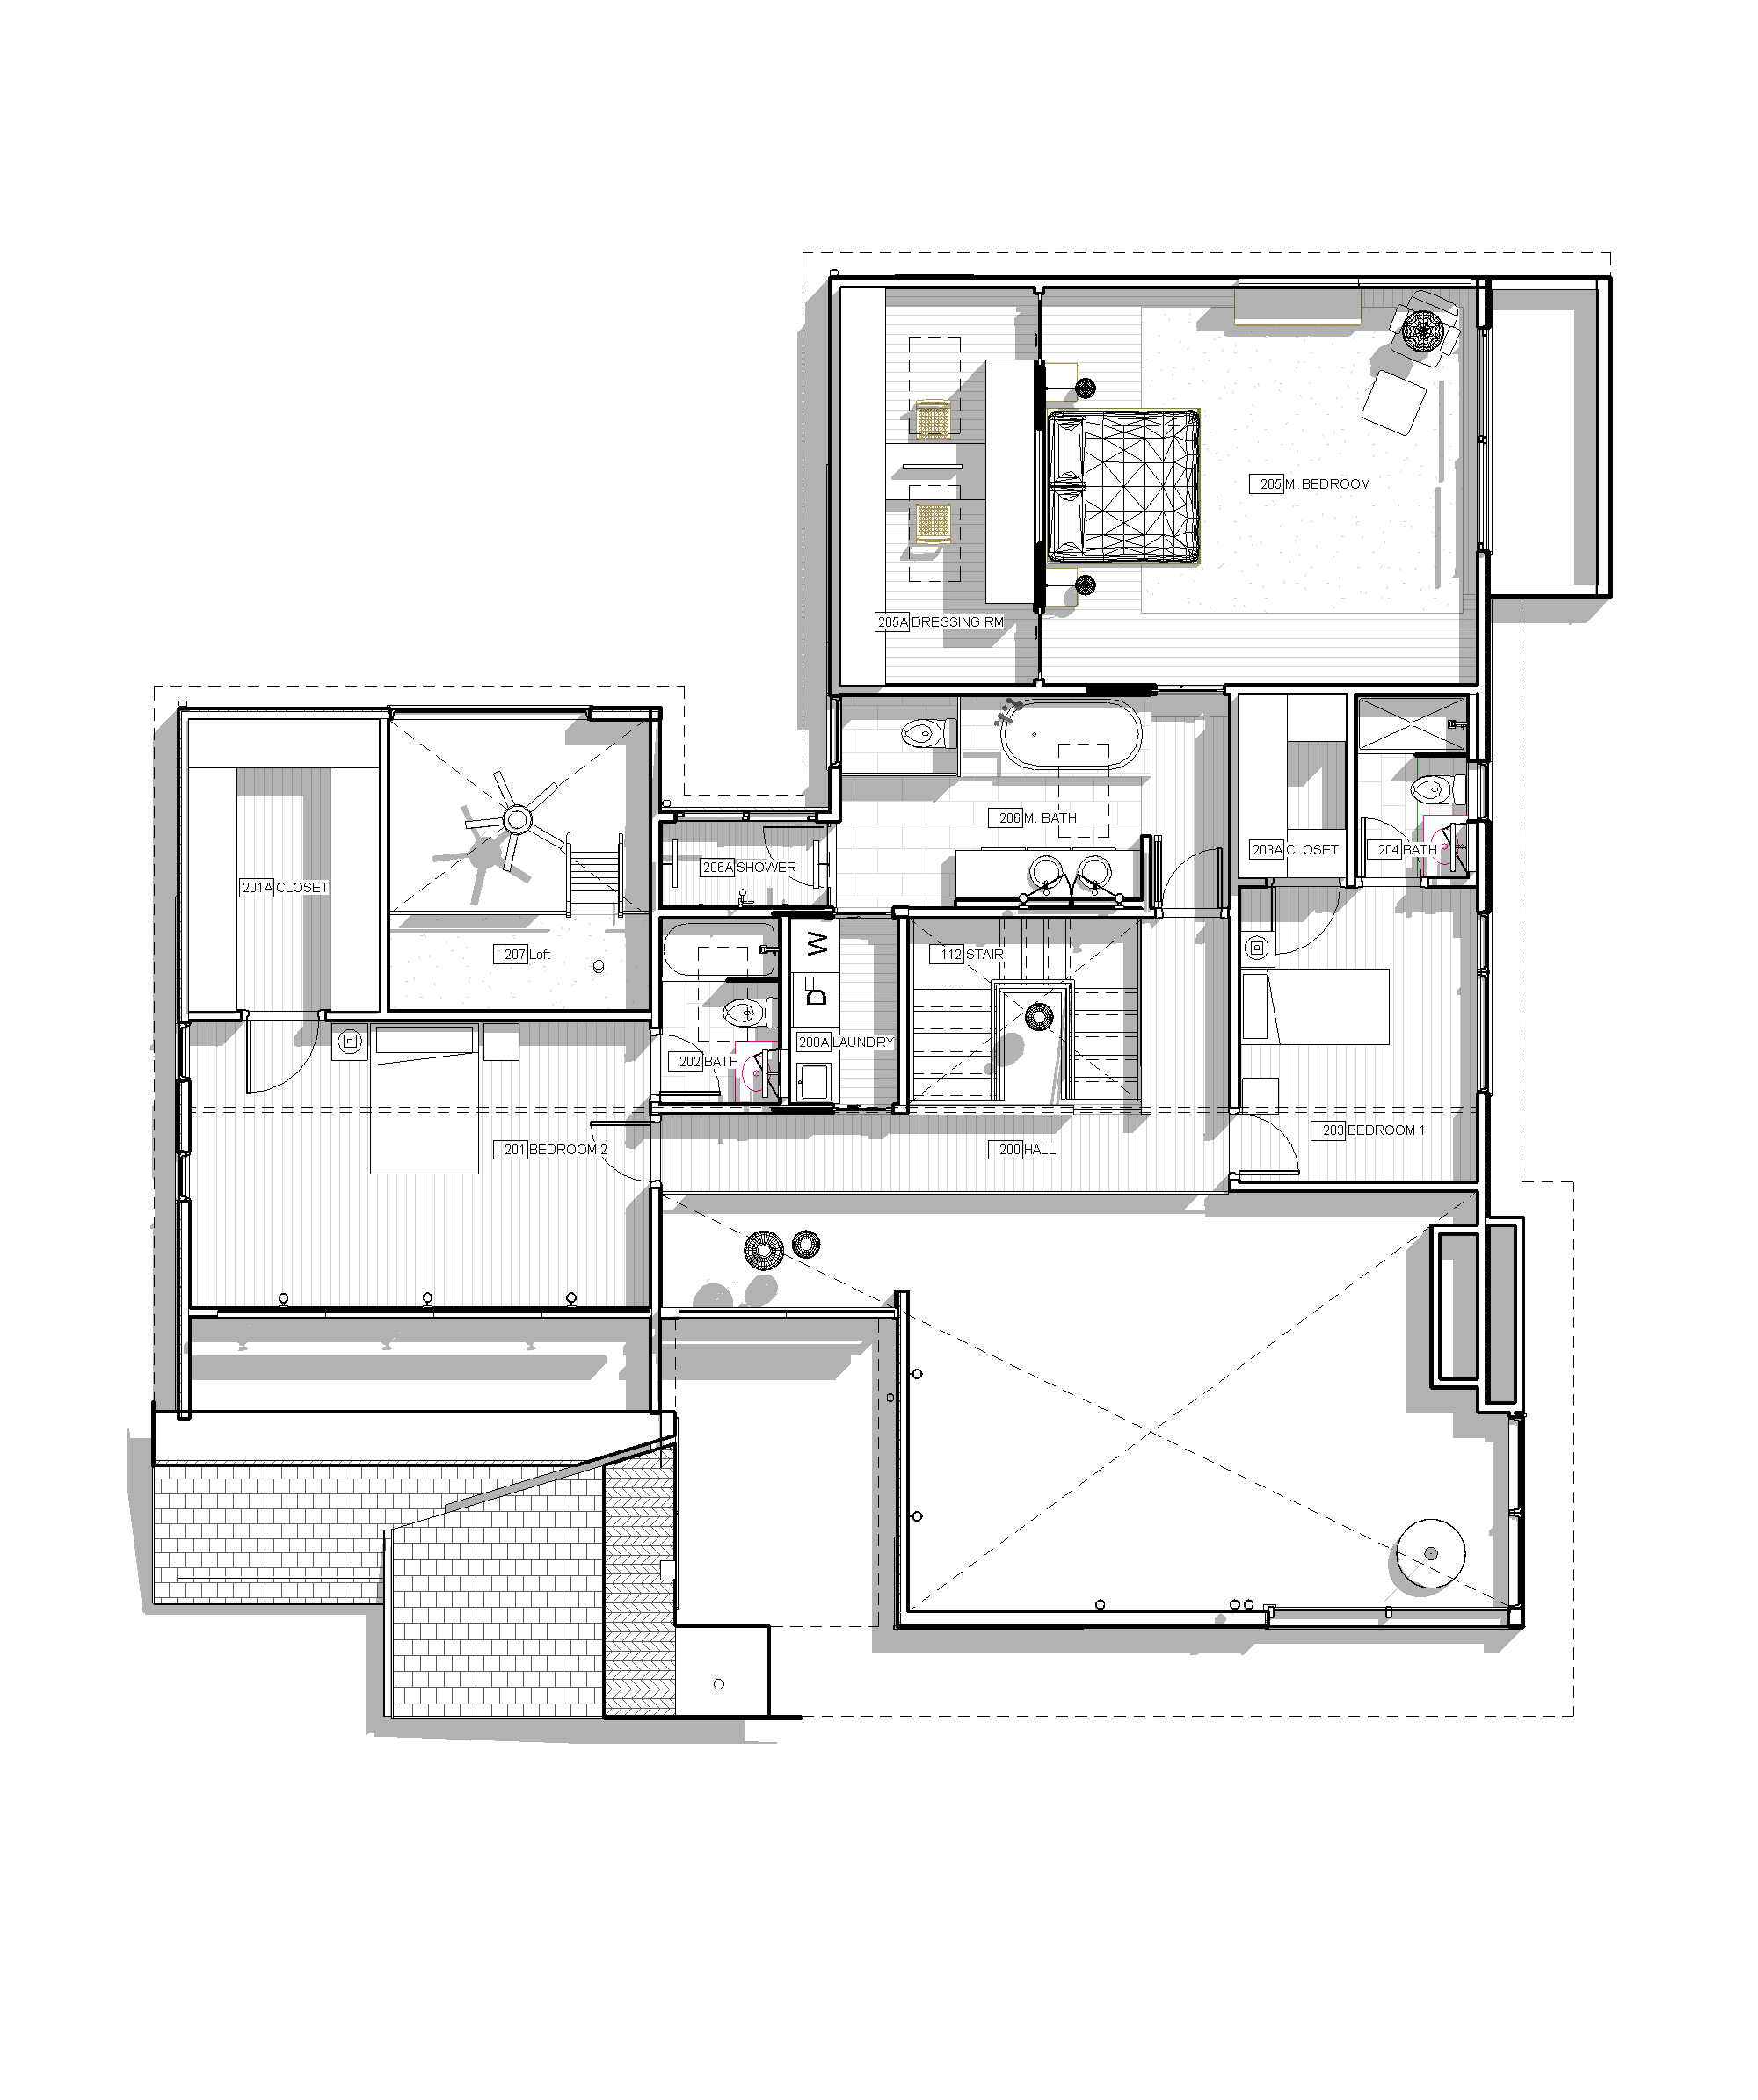 2014-03 914 Coachway_Central_09-PLAN-1.jpg